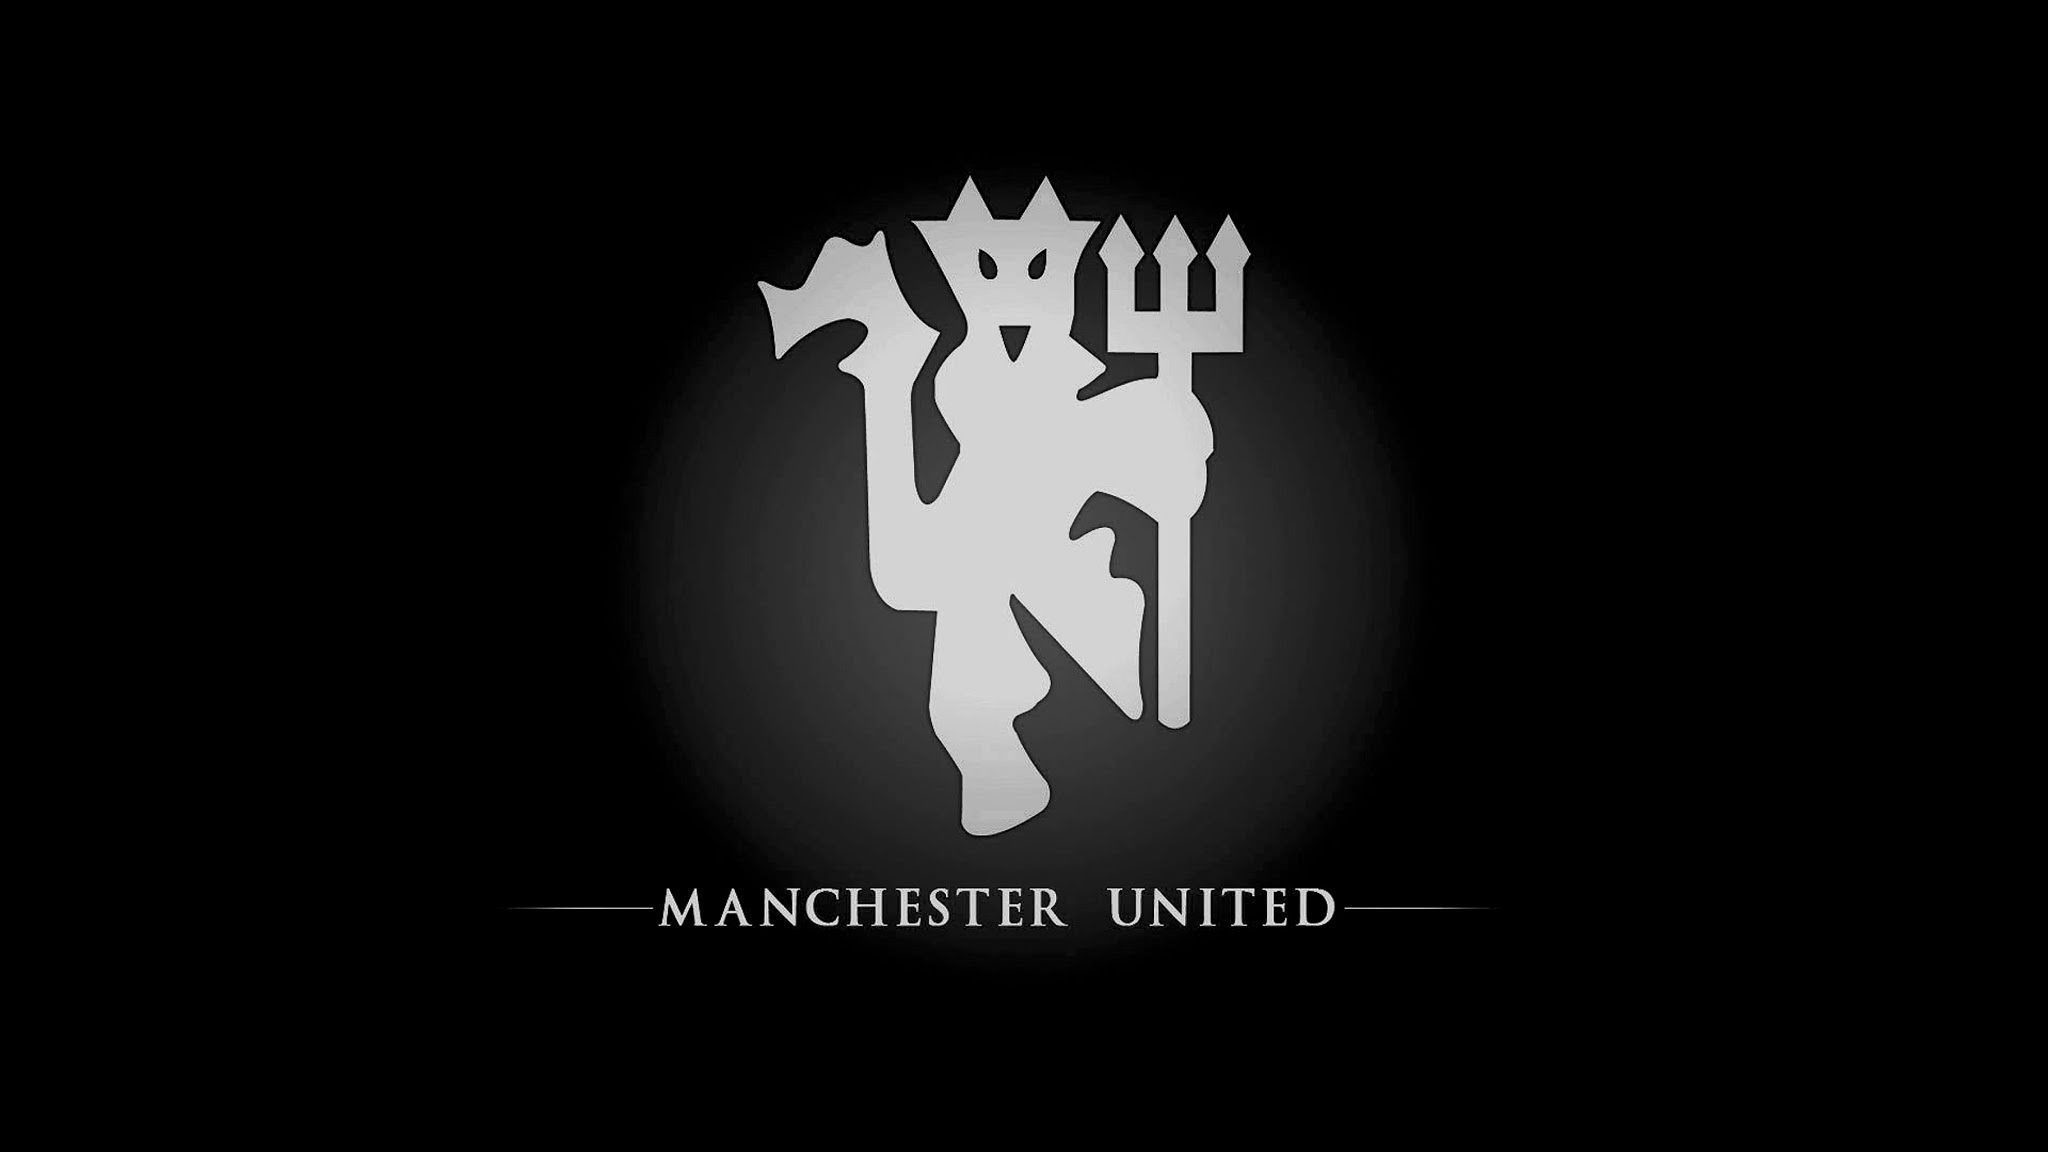 Manchester united logo wallpaper hd 2017 manchester united logo wallpapers hd 2016 wallpaper cave voltagebd Image collections